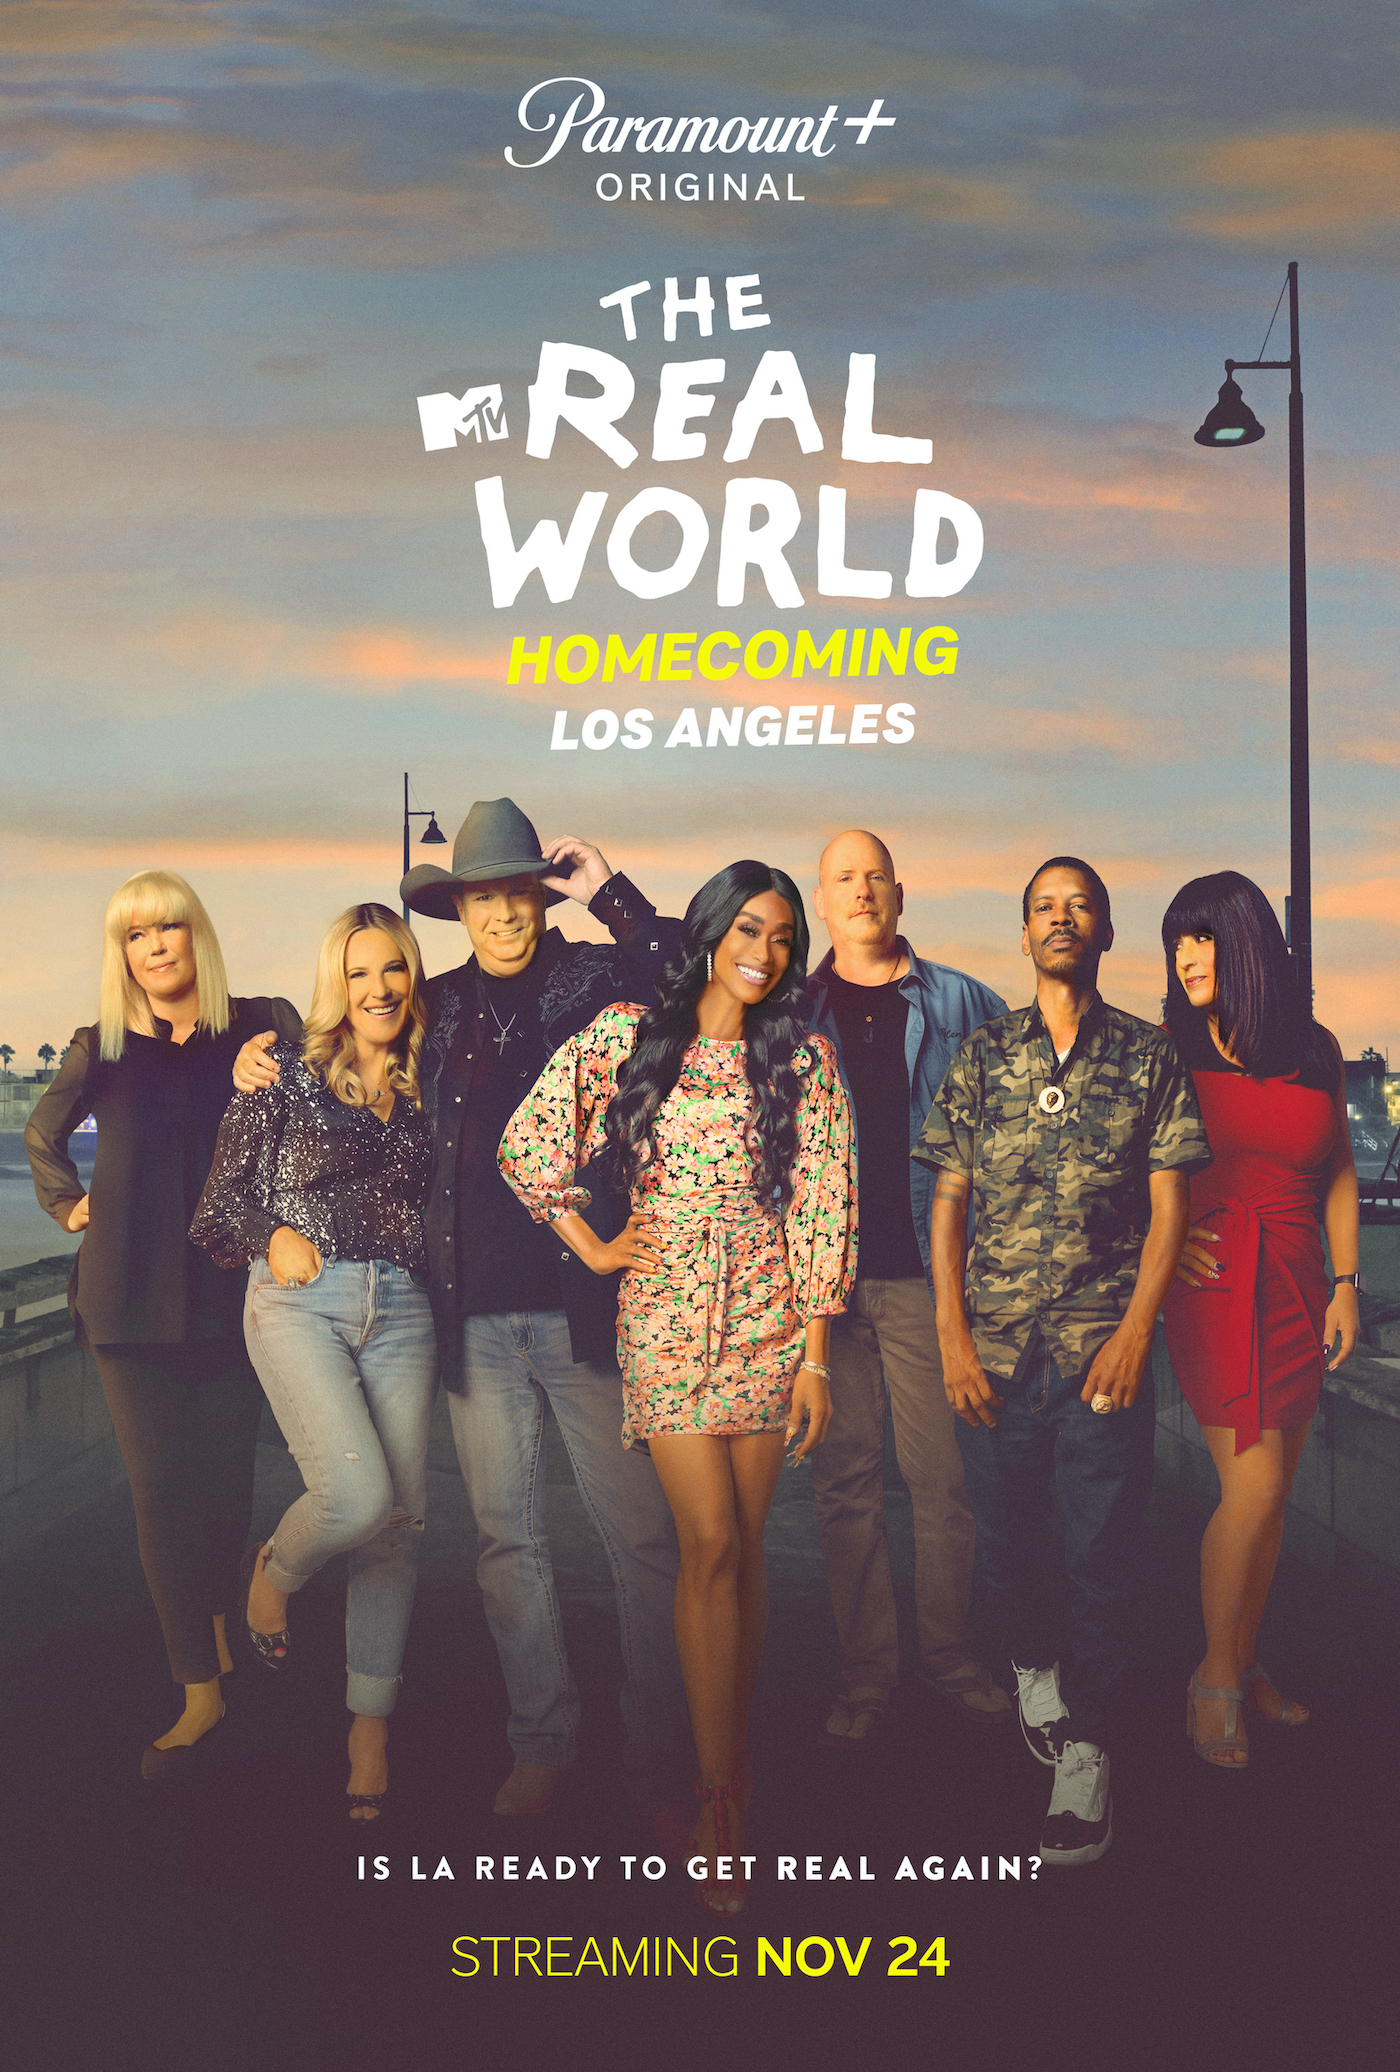 The Real World Homecoming: Los Angeles Cast Returns for Reunion